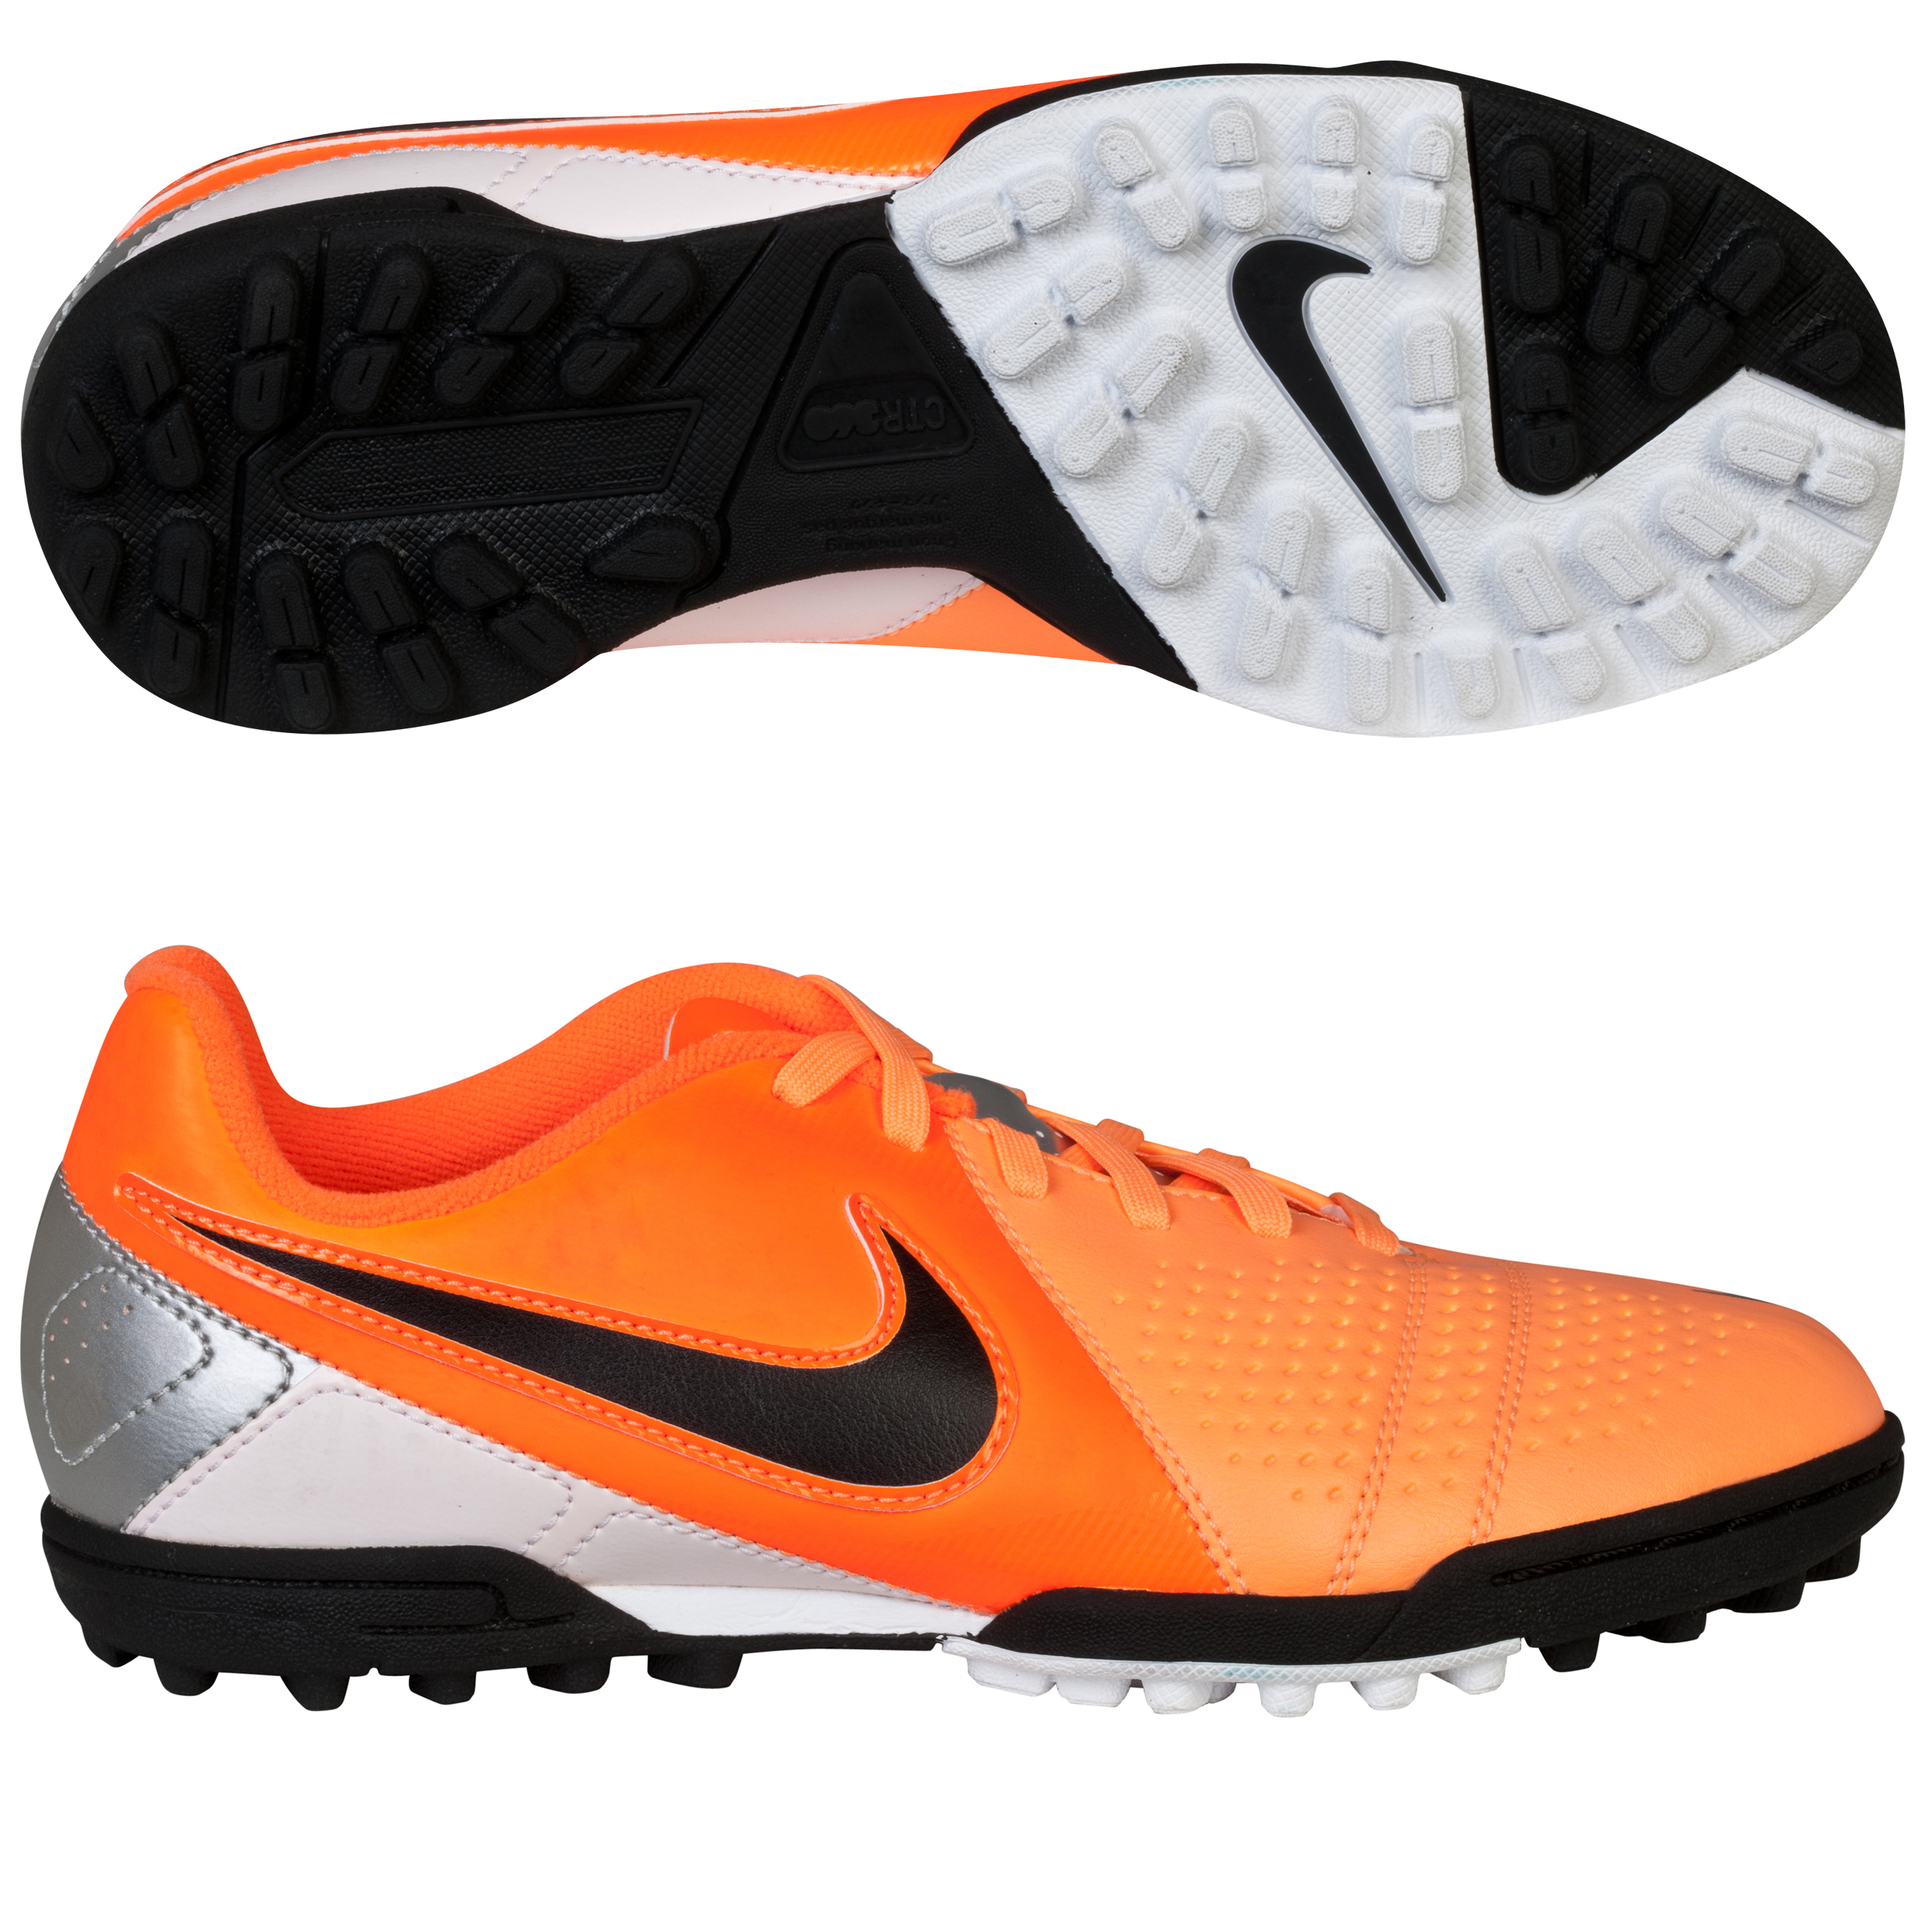 Nike CTR360 Libretto III Astroturf Trainers - Kids Orange